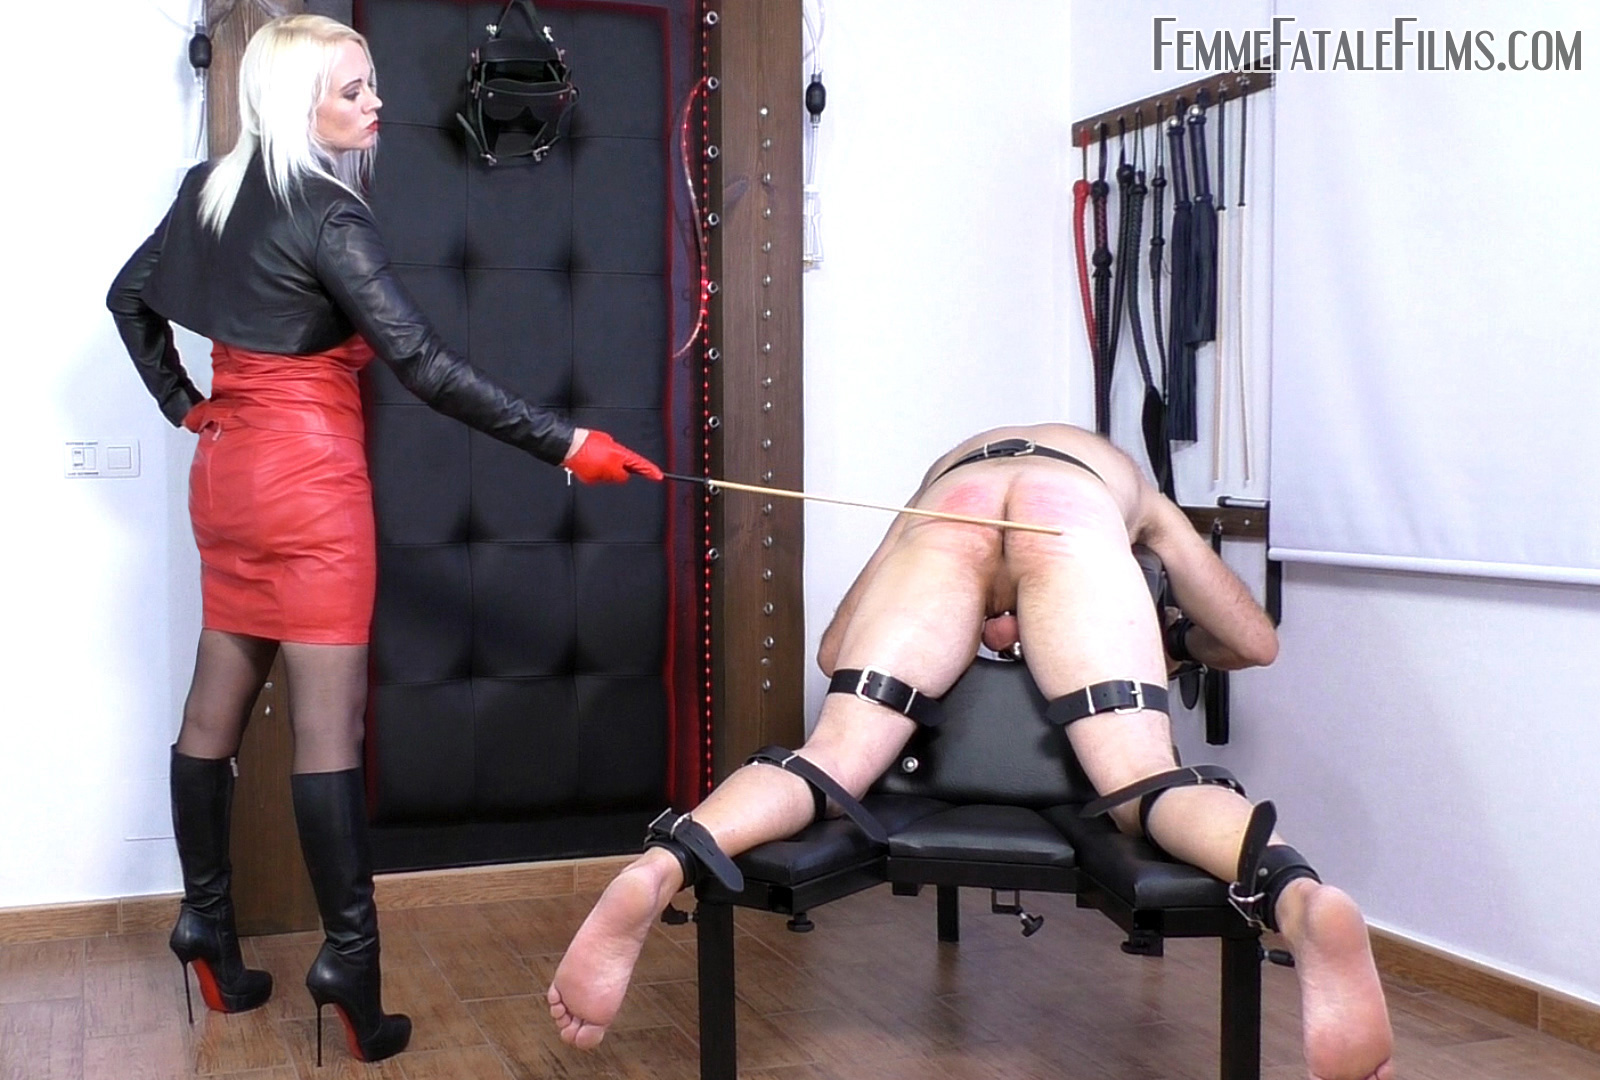 Featuring Divine Mistress Heather. Breaking slaves in to new experiences is always a pleasure of mine, especially when the experience is an extreme one! In this session, I intensify the suffering for one of my personal slaves with the use of several whips, single tails and a beautiful and vicious cat-o'-nine. When it came to the cane, a form of treatment this slave especially hates, I decided to give him the three dragon treatment! Three brutal dragon canes of differing density to ensure he got a good range of agonising sensations.